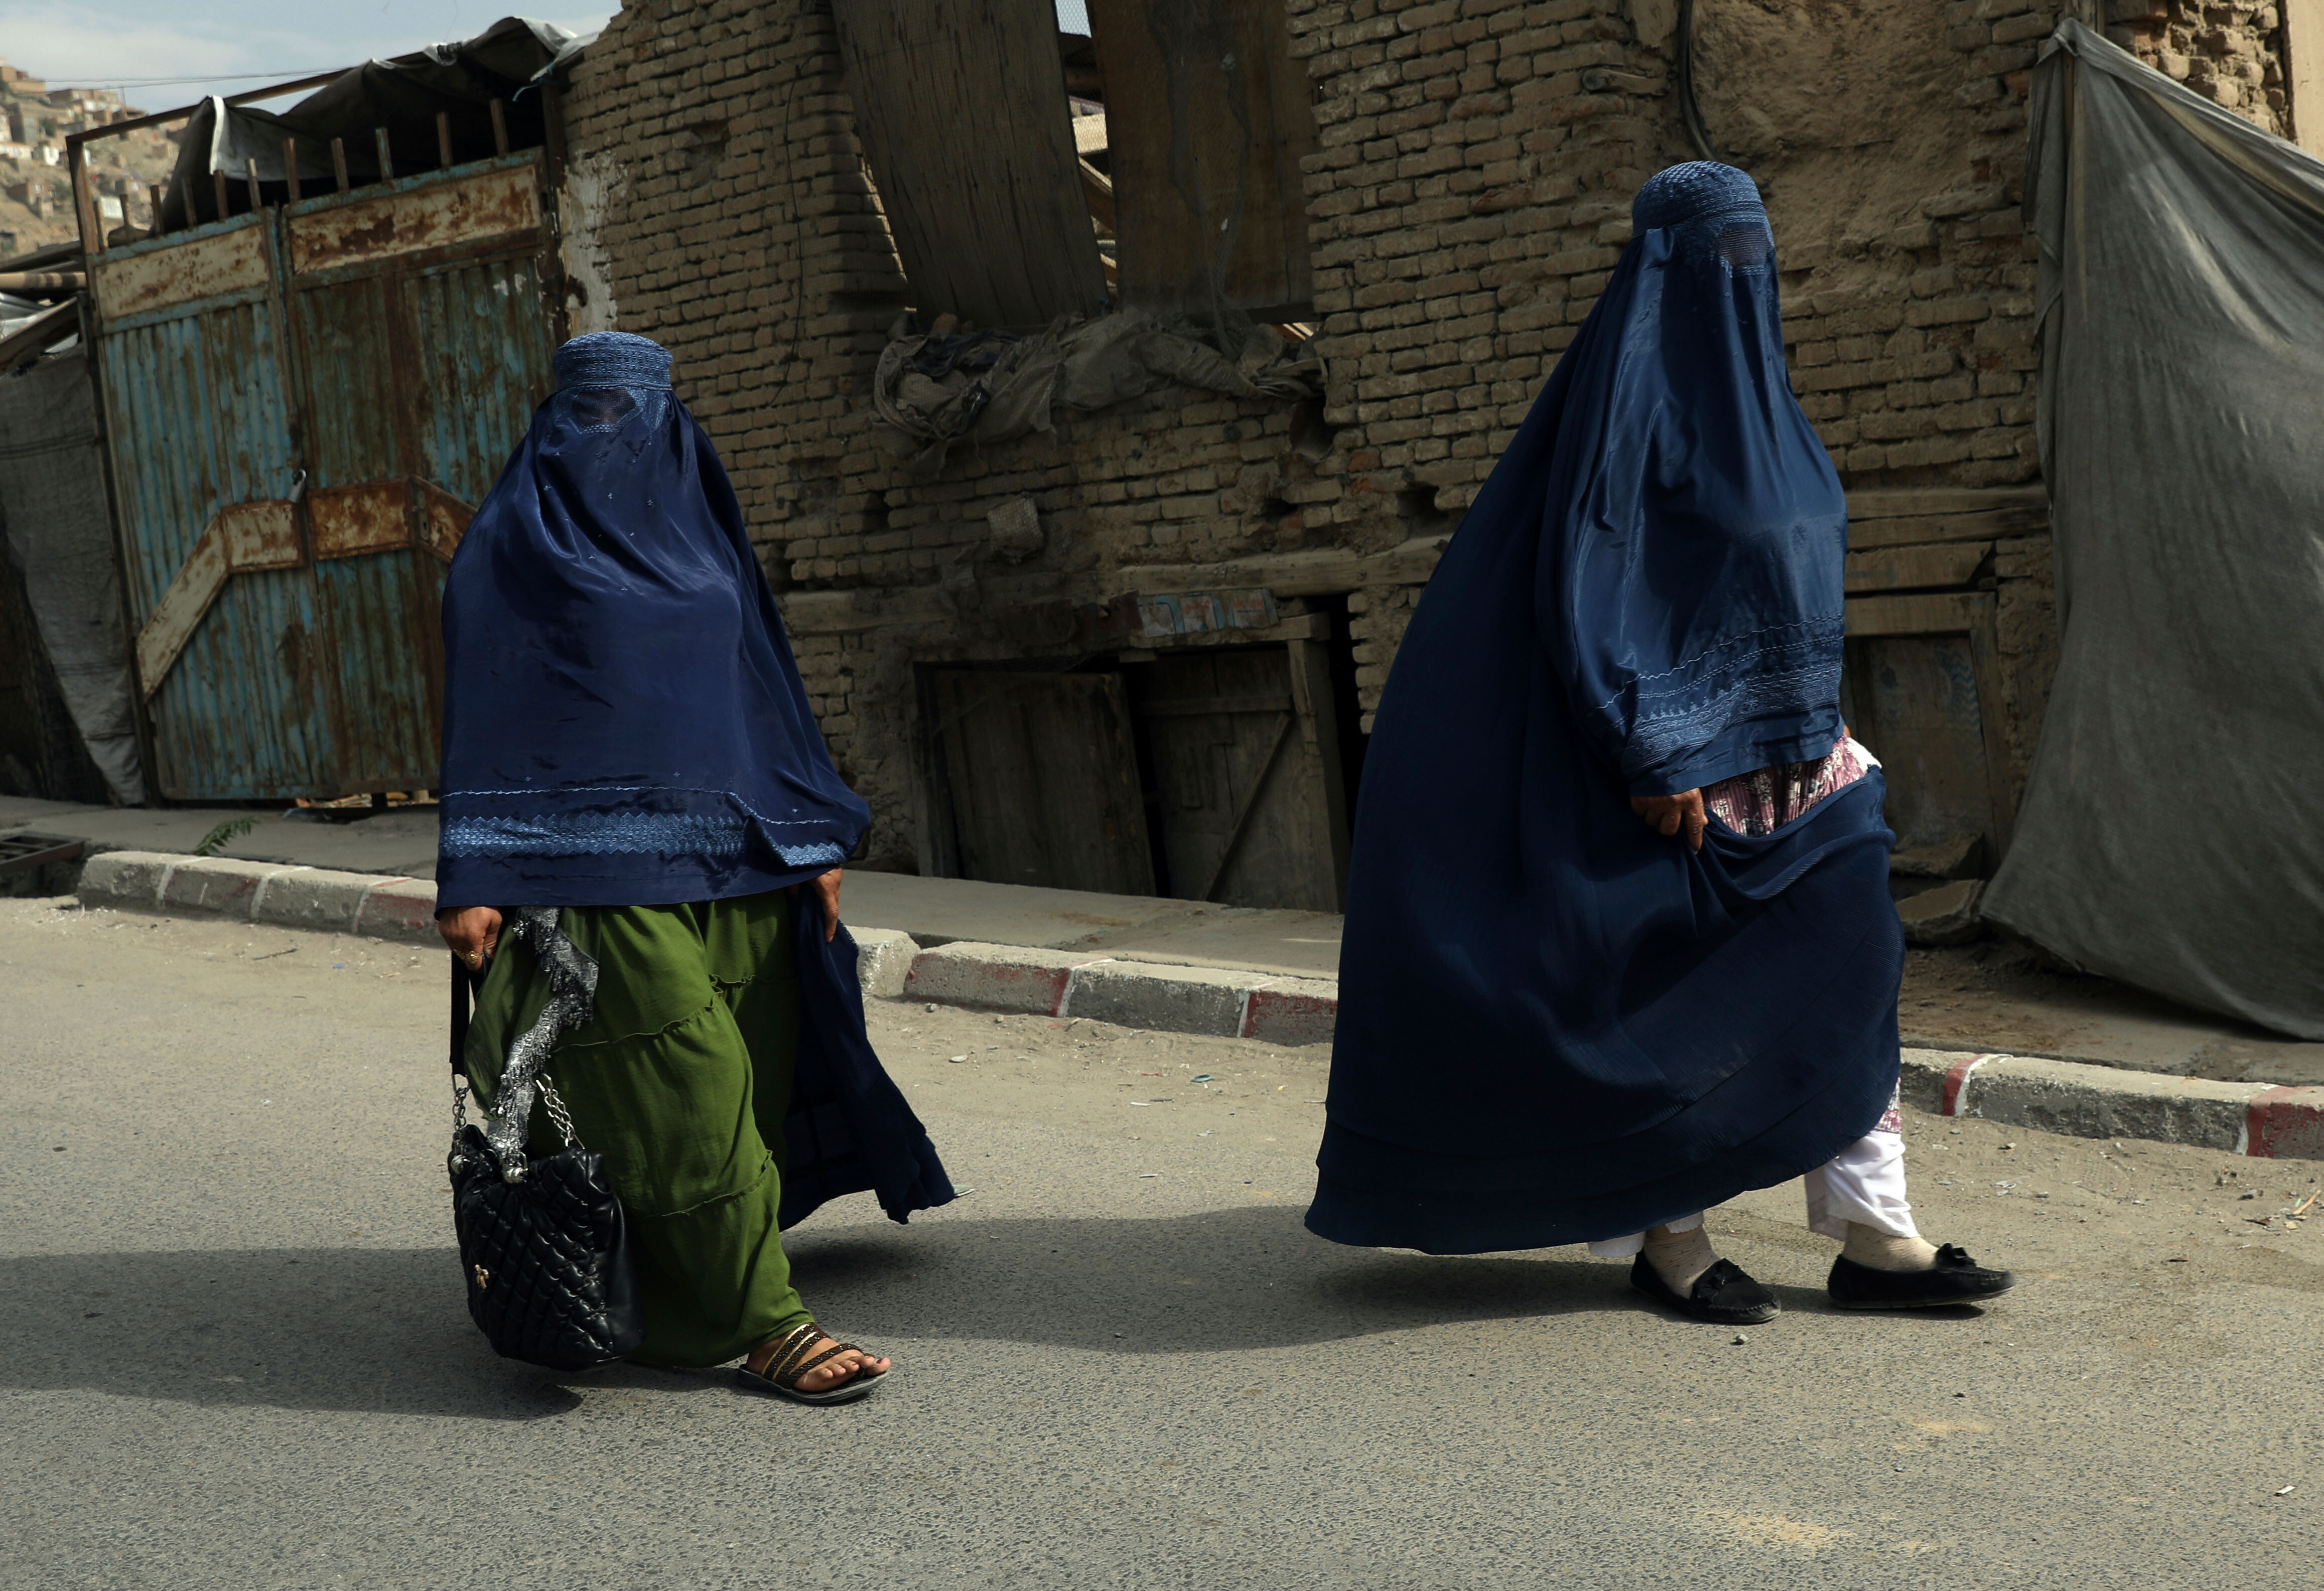 World Bank halts financial support to Afghanistan, says it's 'deeply concerned' for women